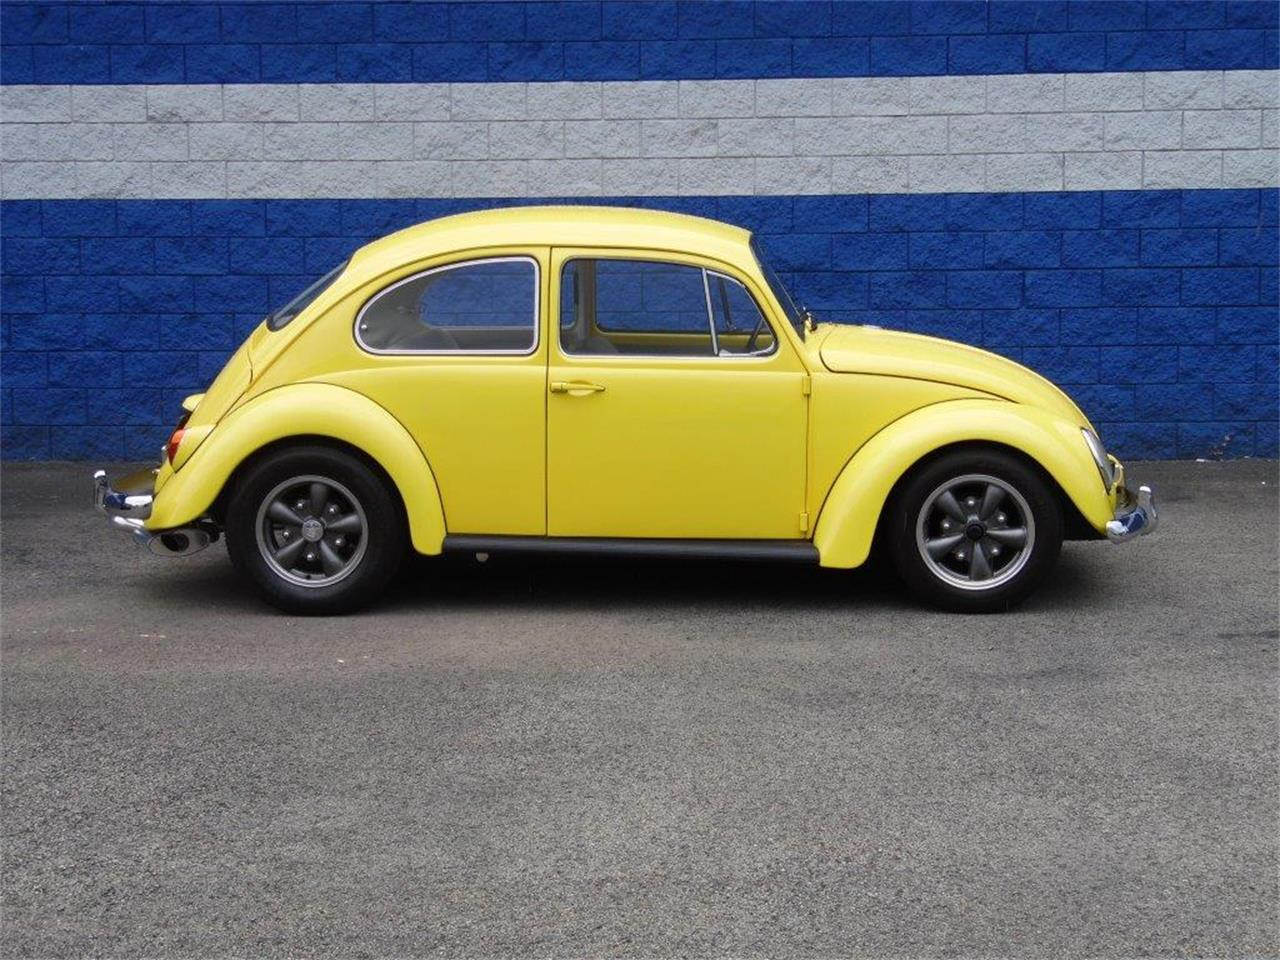 Large Picture of Classic 1965 Volkswagen Beetle located in CONNELLSVILLE Pennsylvania Offered by Scott C's Classics & Collectibles - Q8JE